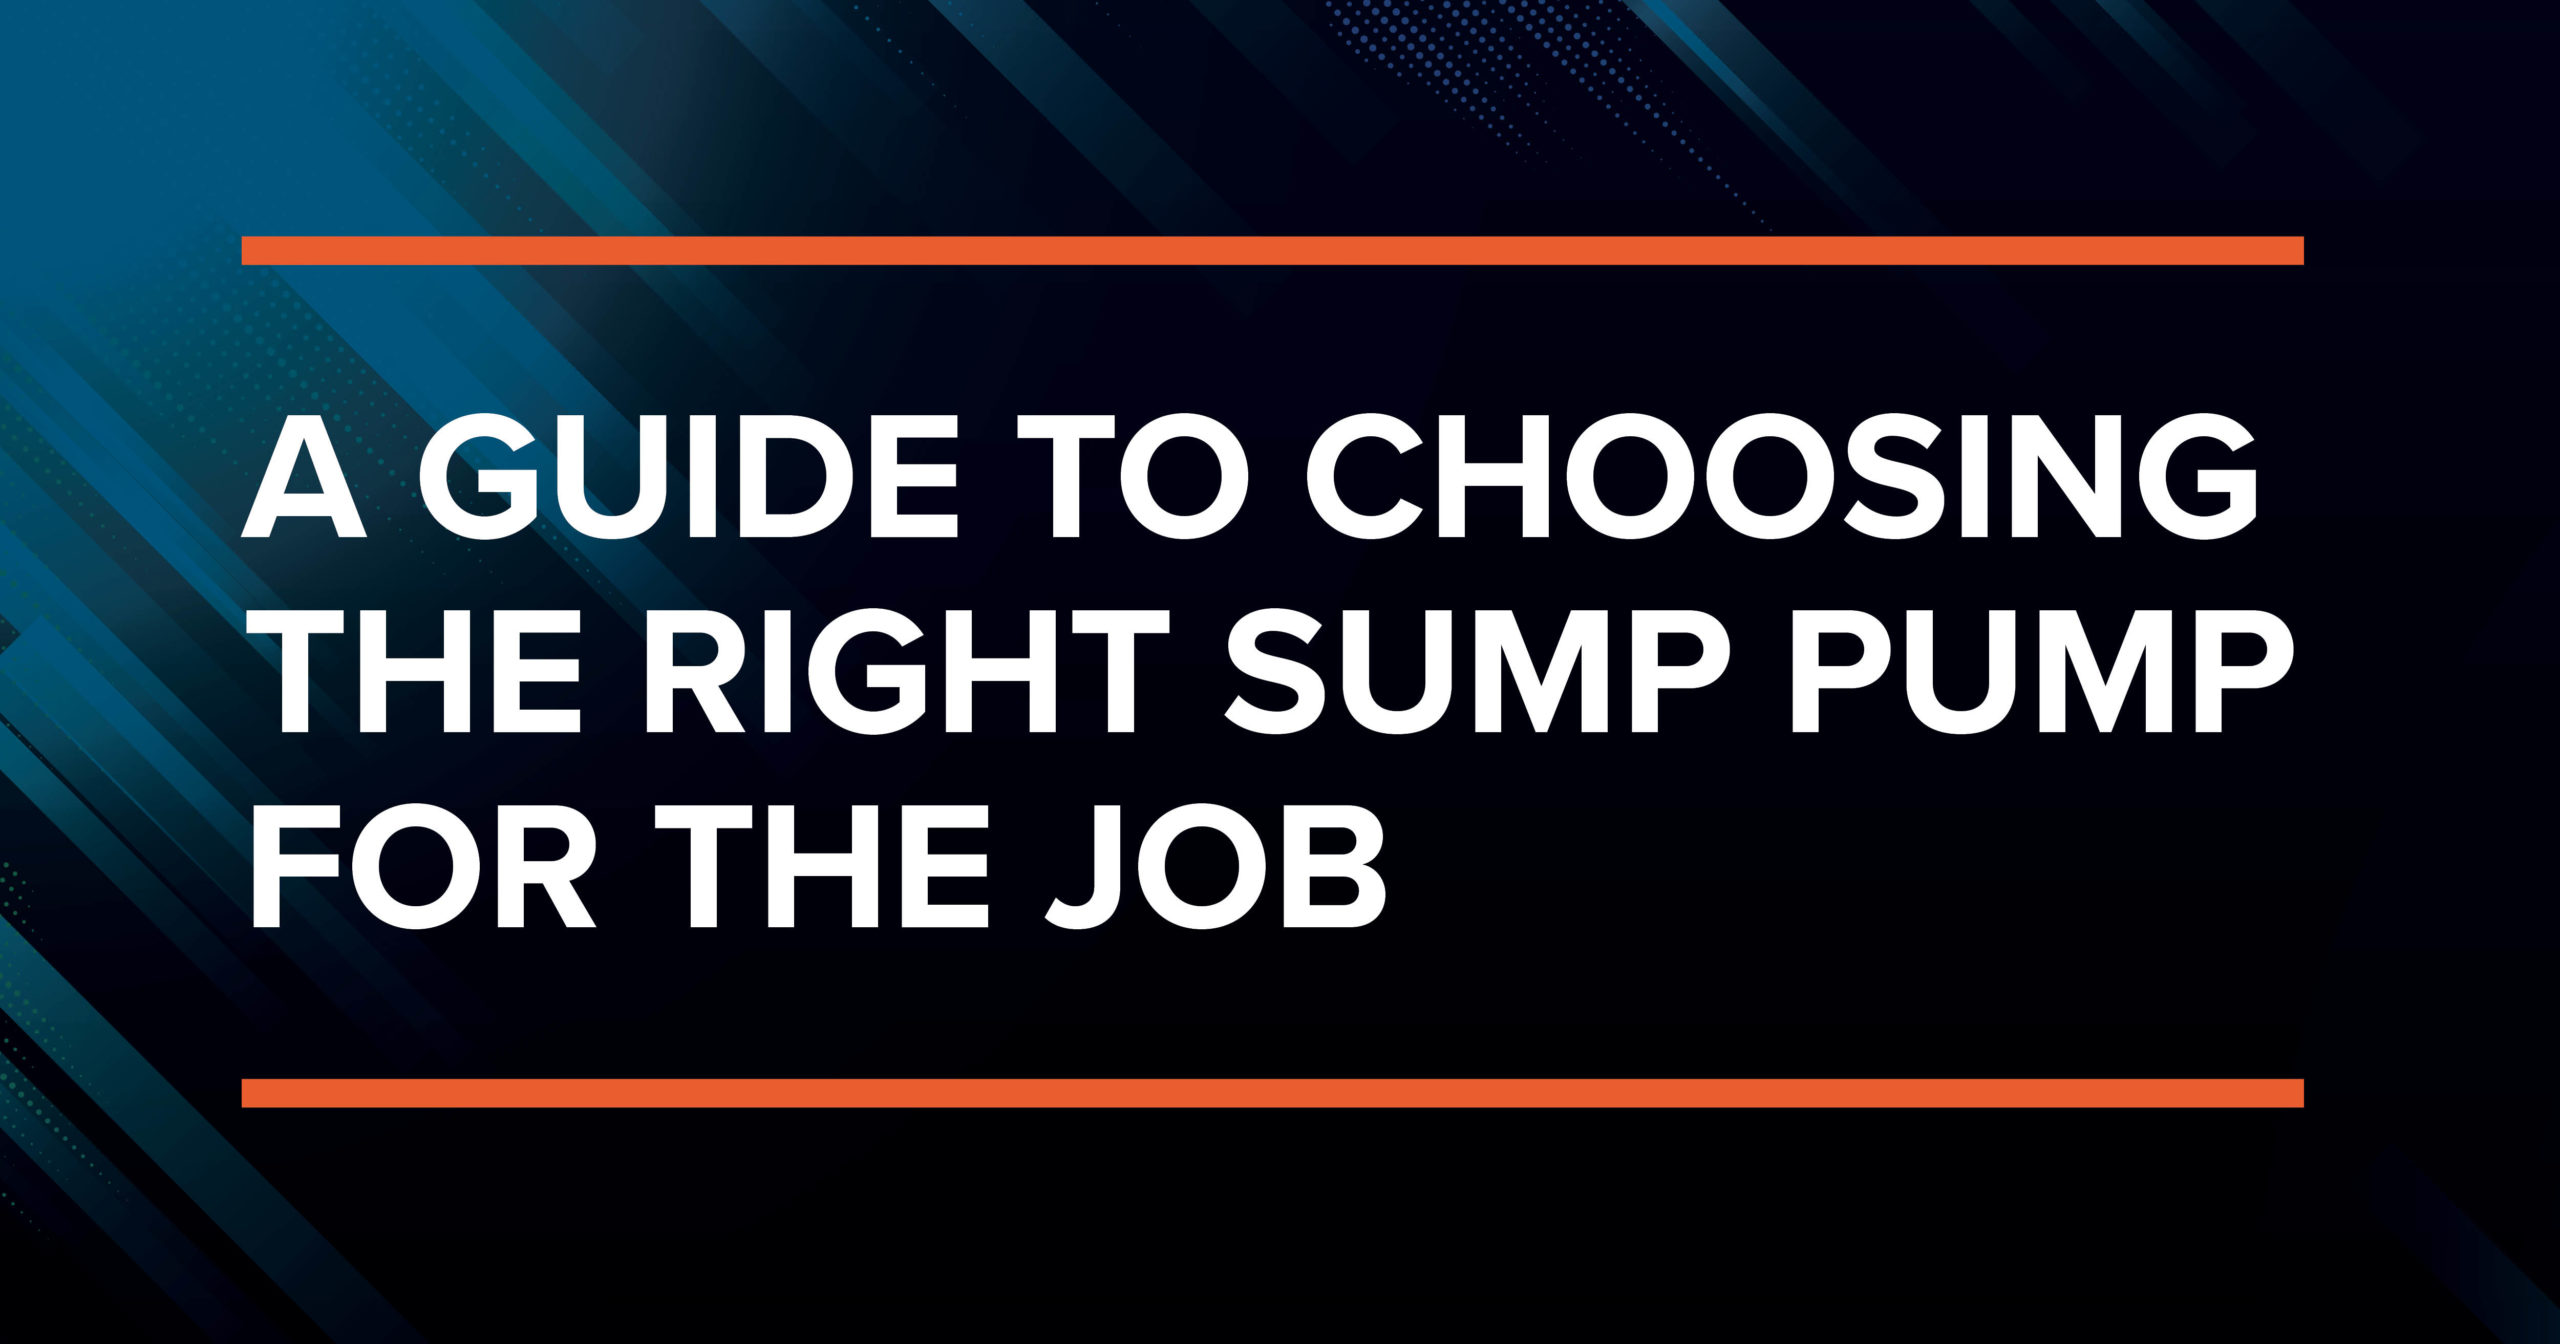 A Guide to Choosing the Right Sump Pump for the Job